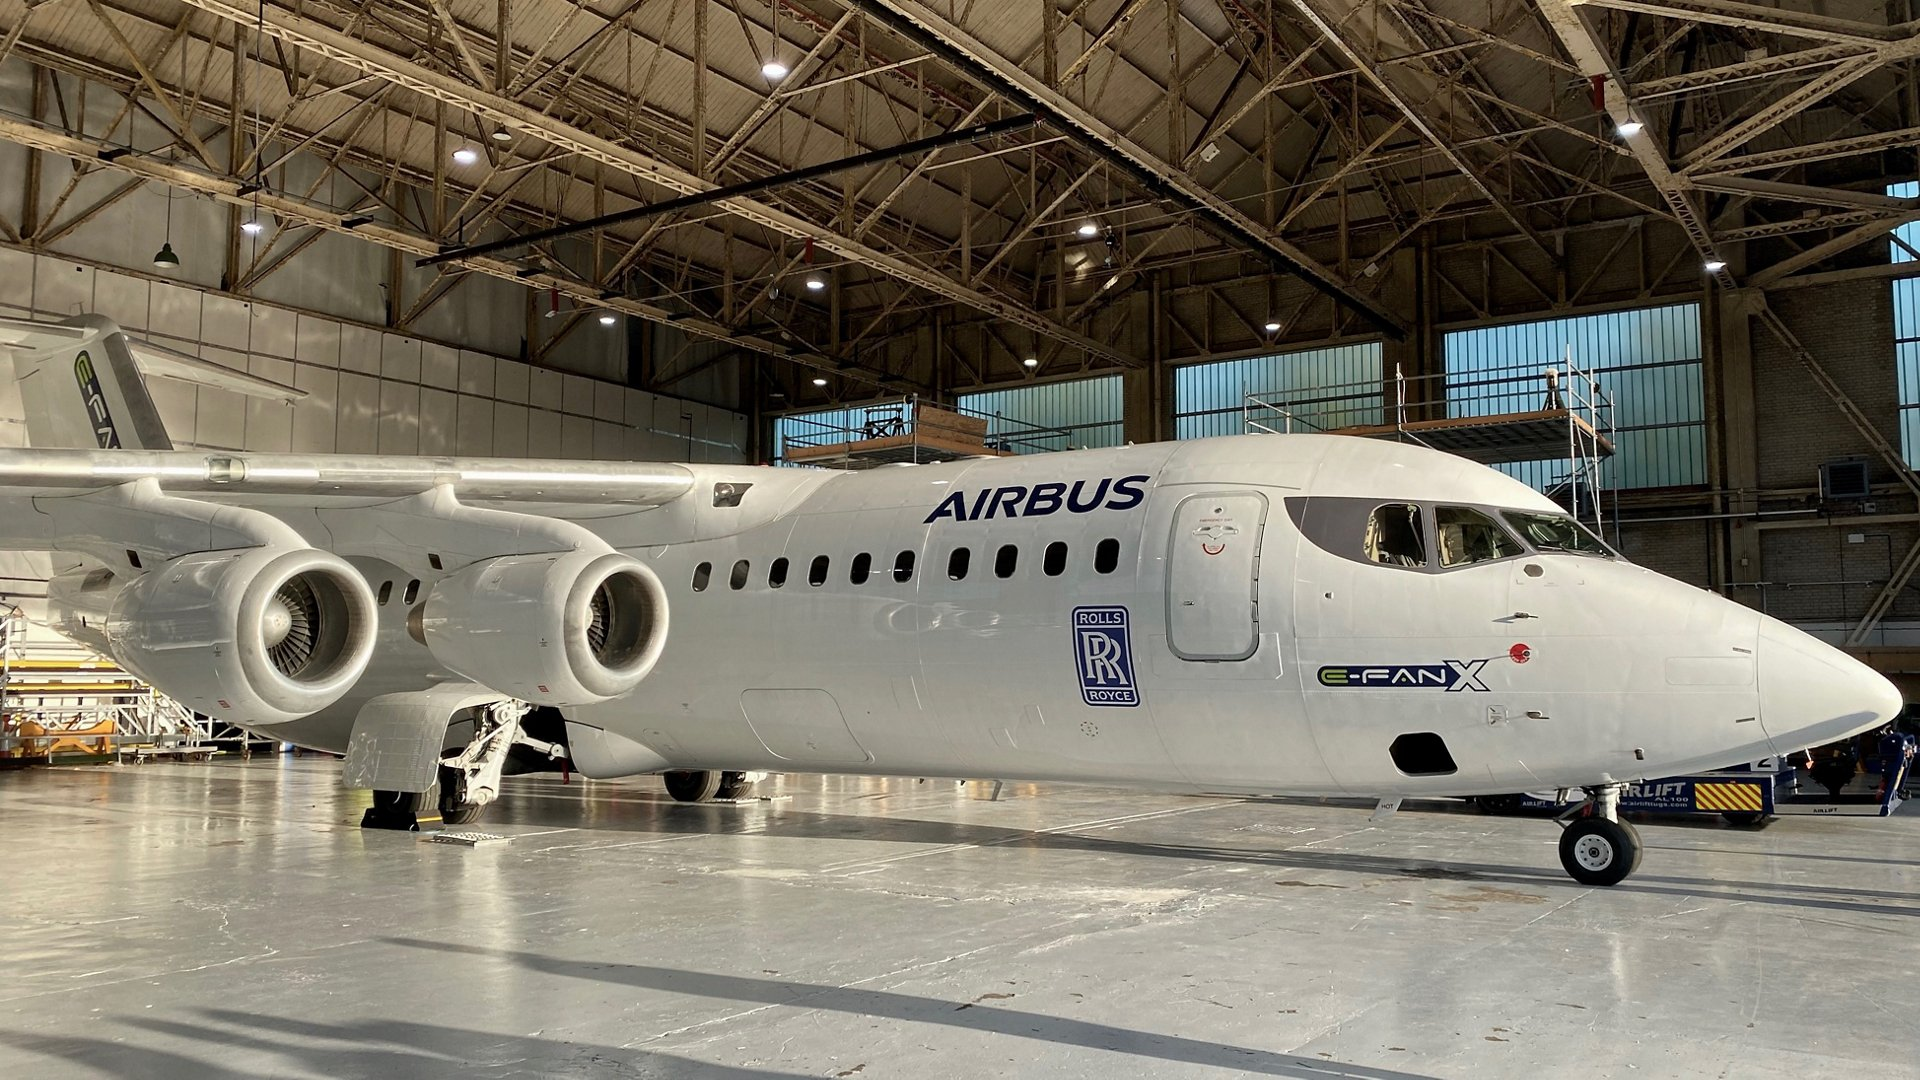 Airbus and Rolls Royce E-Fan X hybrid plane gets permanently grounded